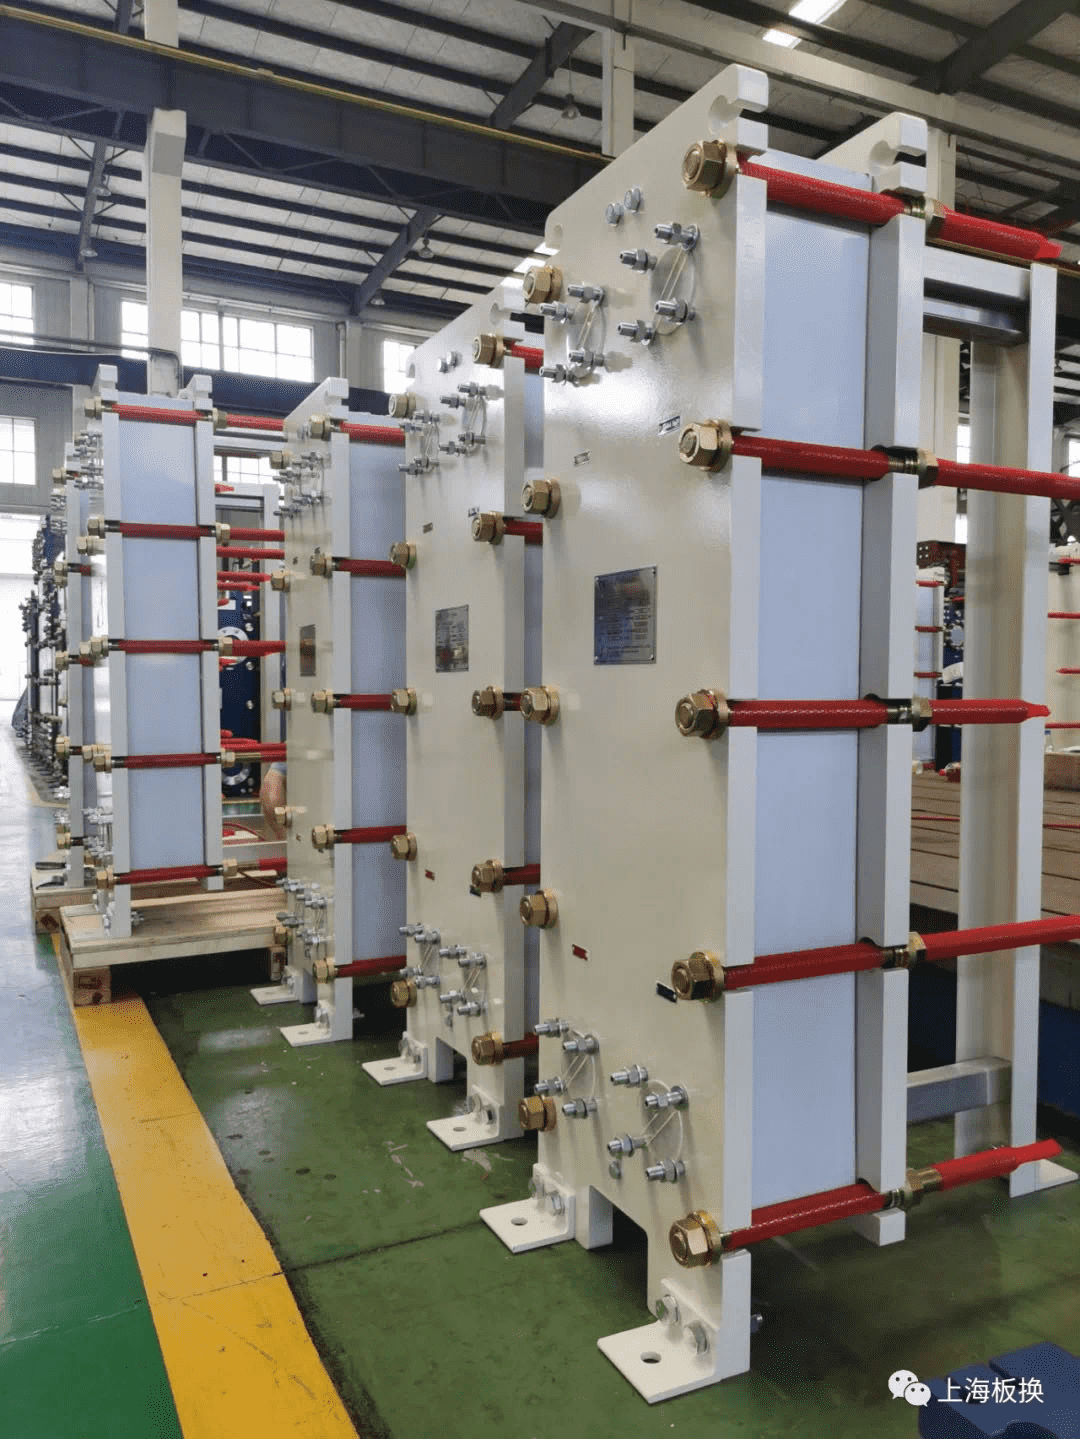 Plate Heat Exchangers with CE mark were successfully delivered